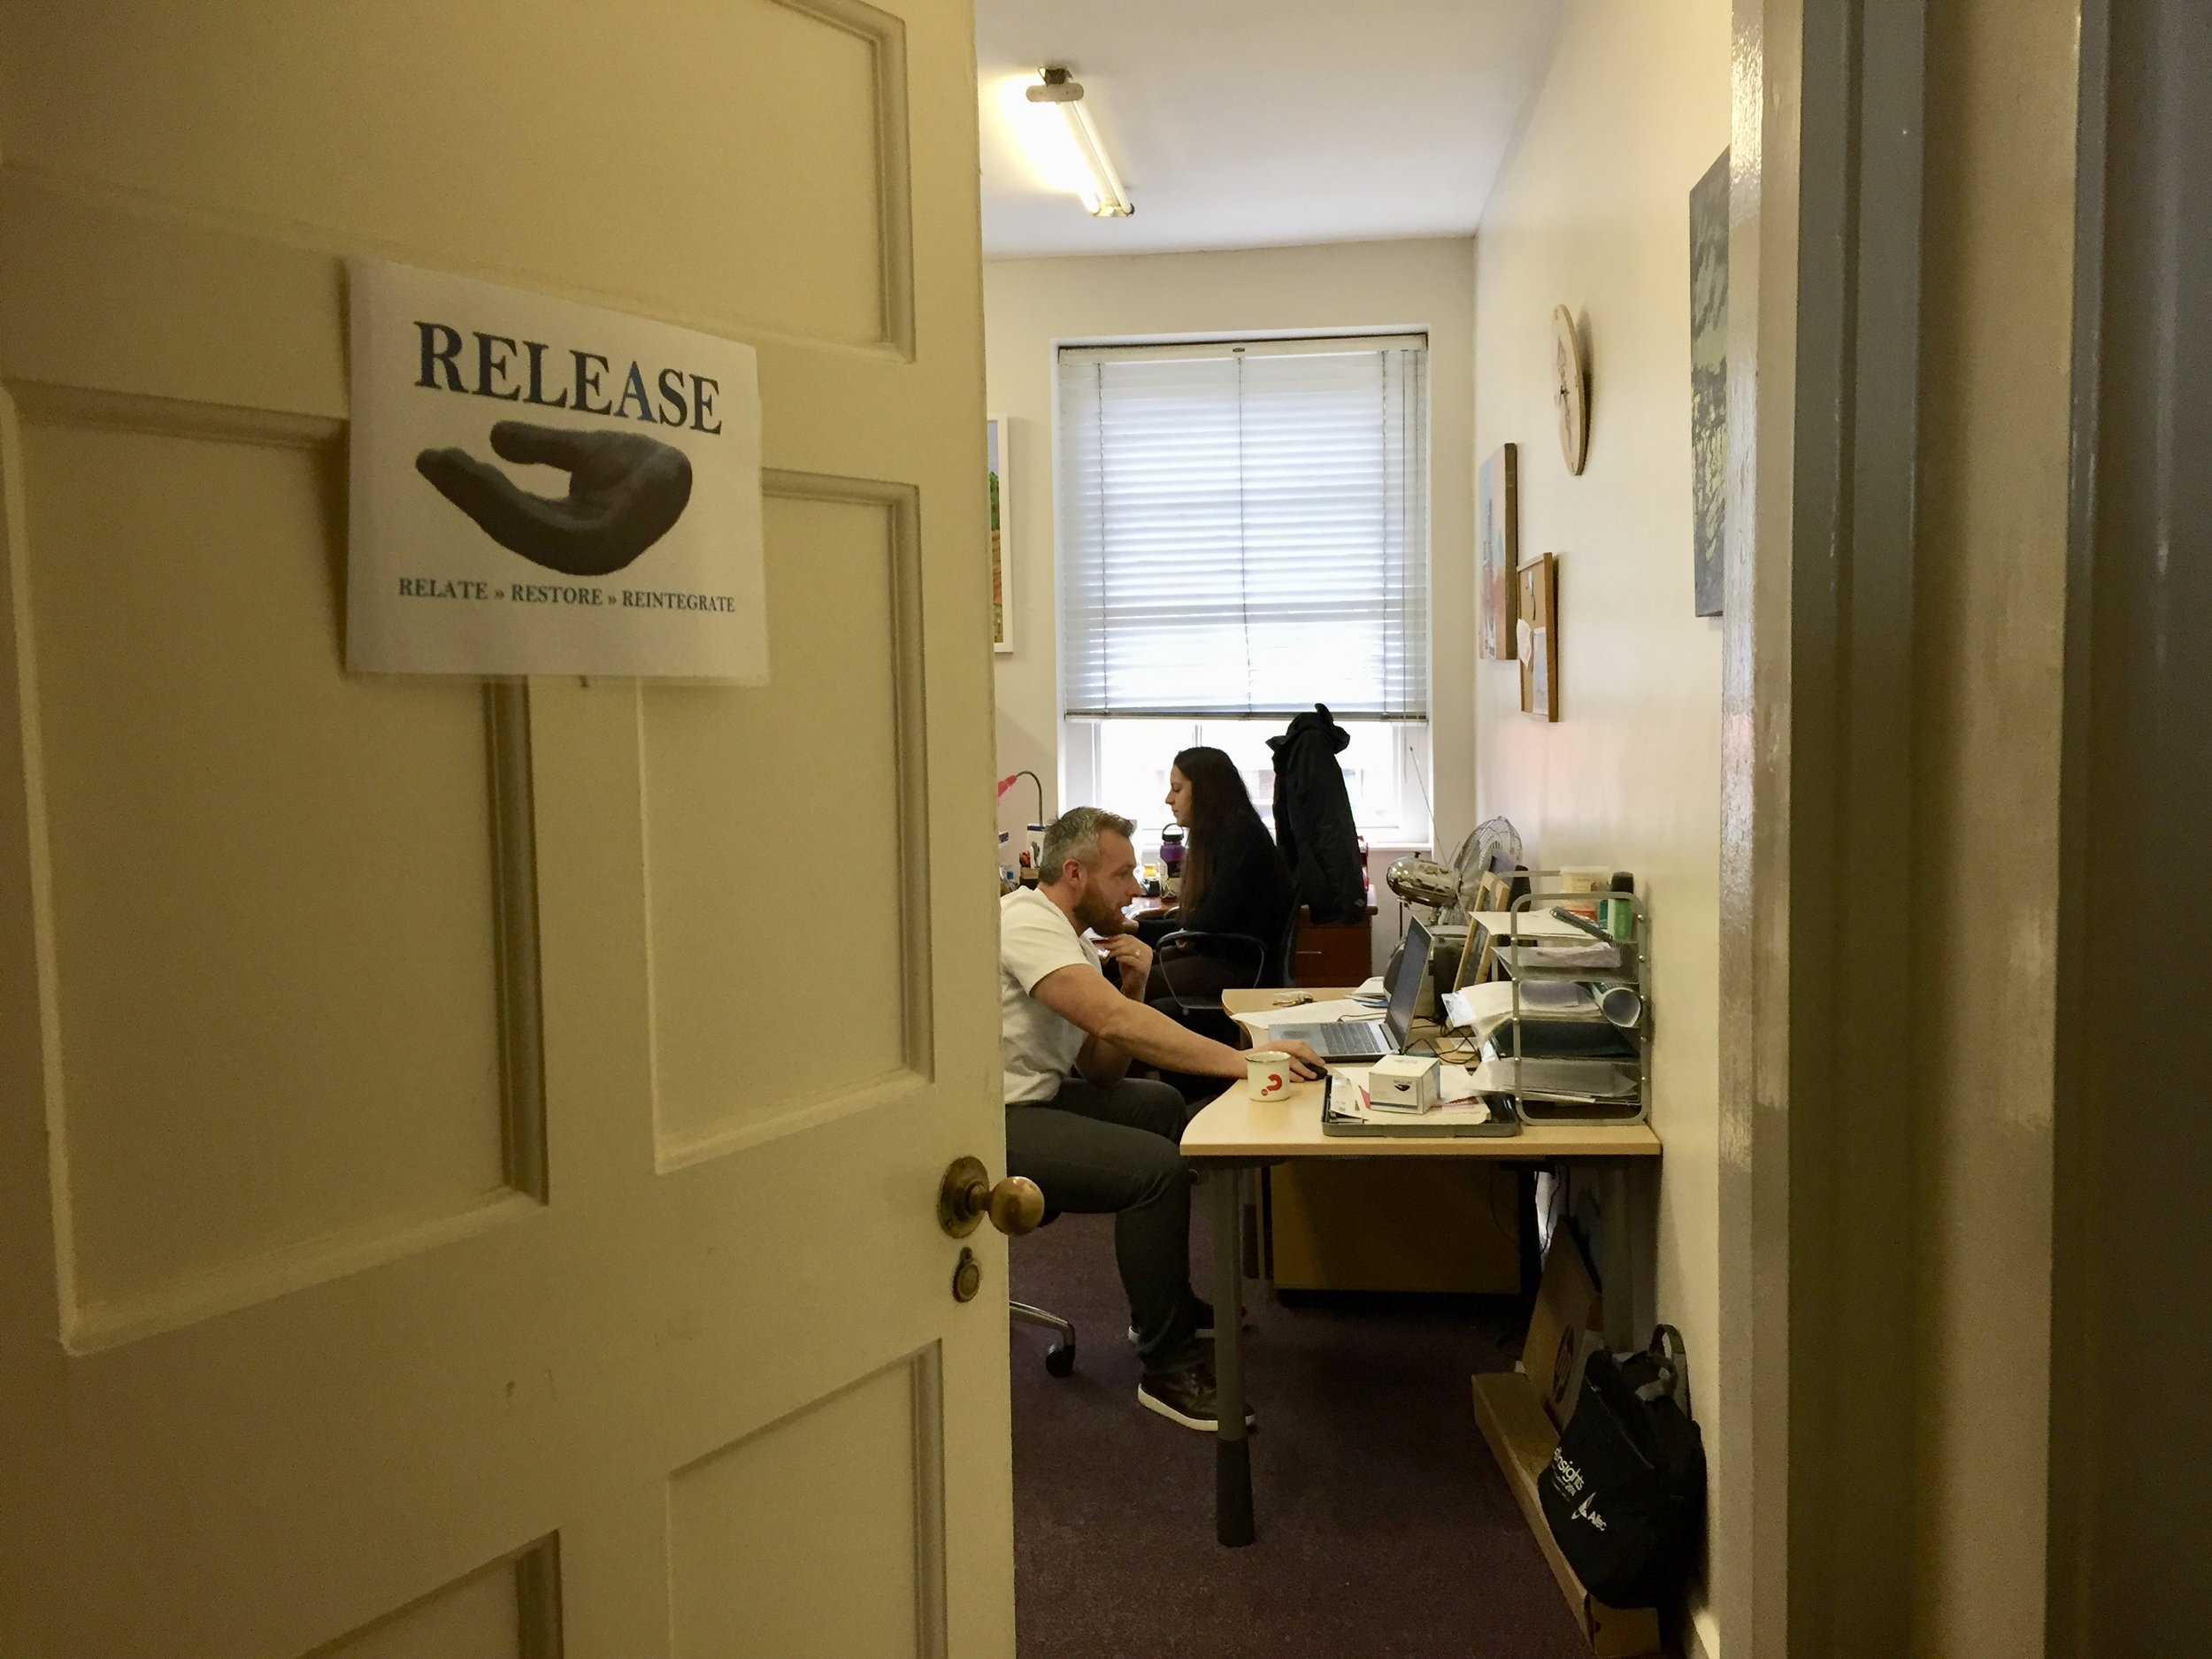 neutral venue visits - Release offers our office's basement living and kitchen space as a neutral venue for escorted prisoners to meet with their loved ones outside the prison environment.